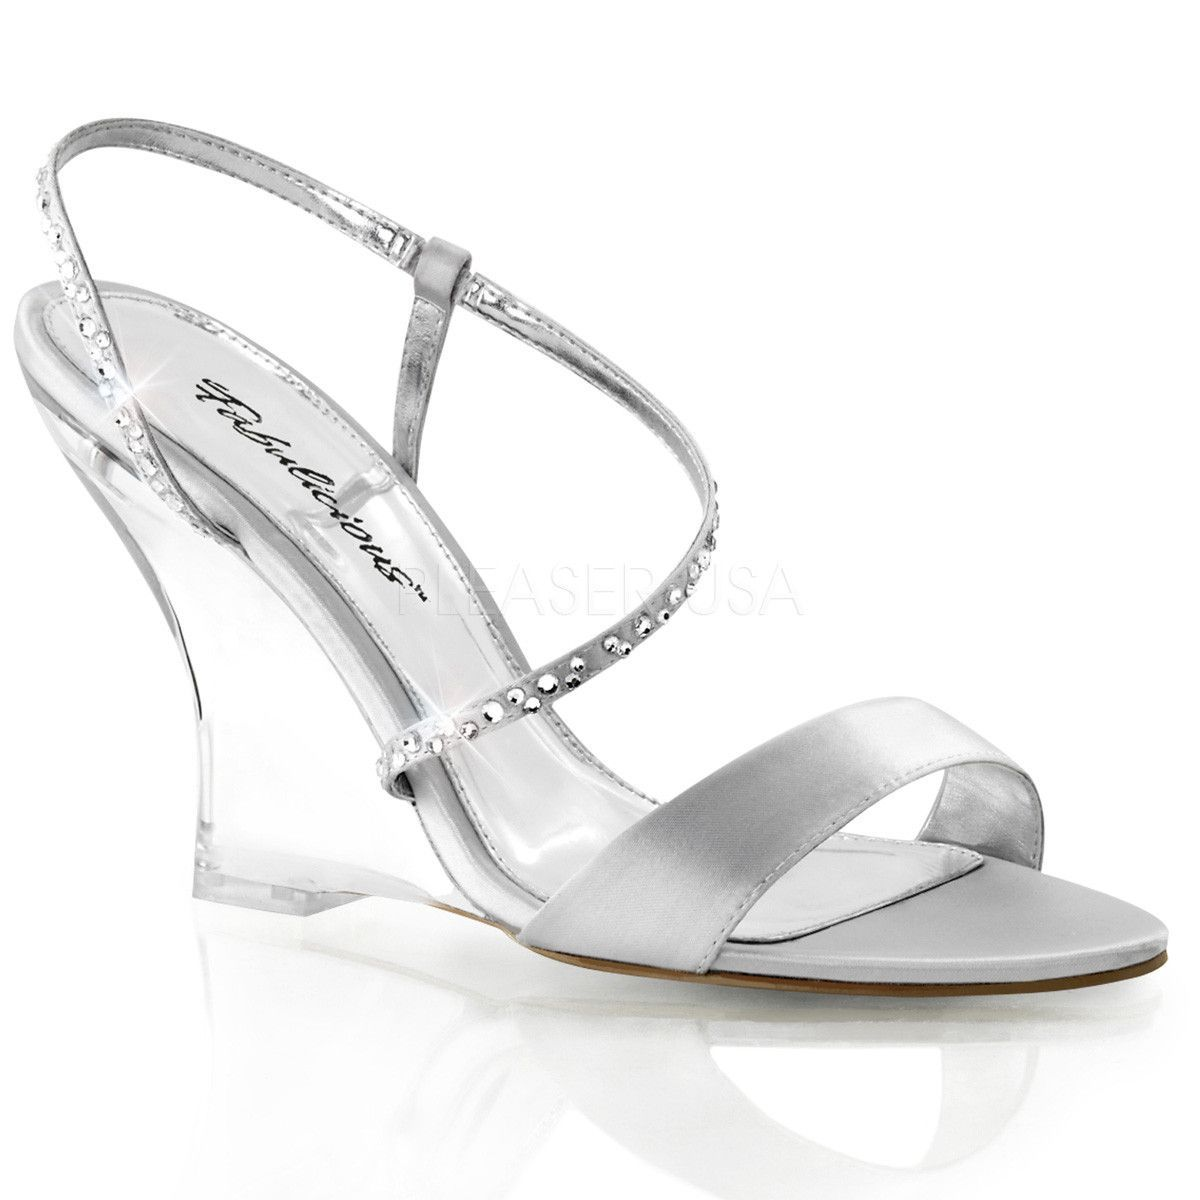 fabulicious lovely 417 silver satin clear slingback wedges